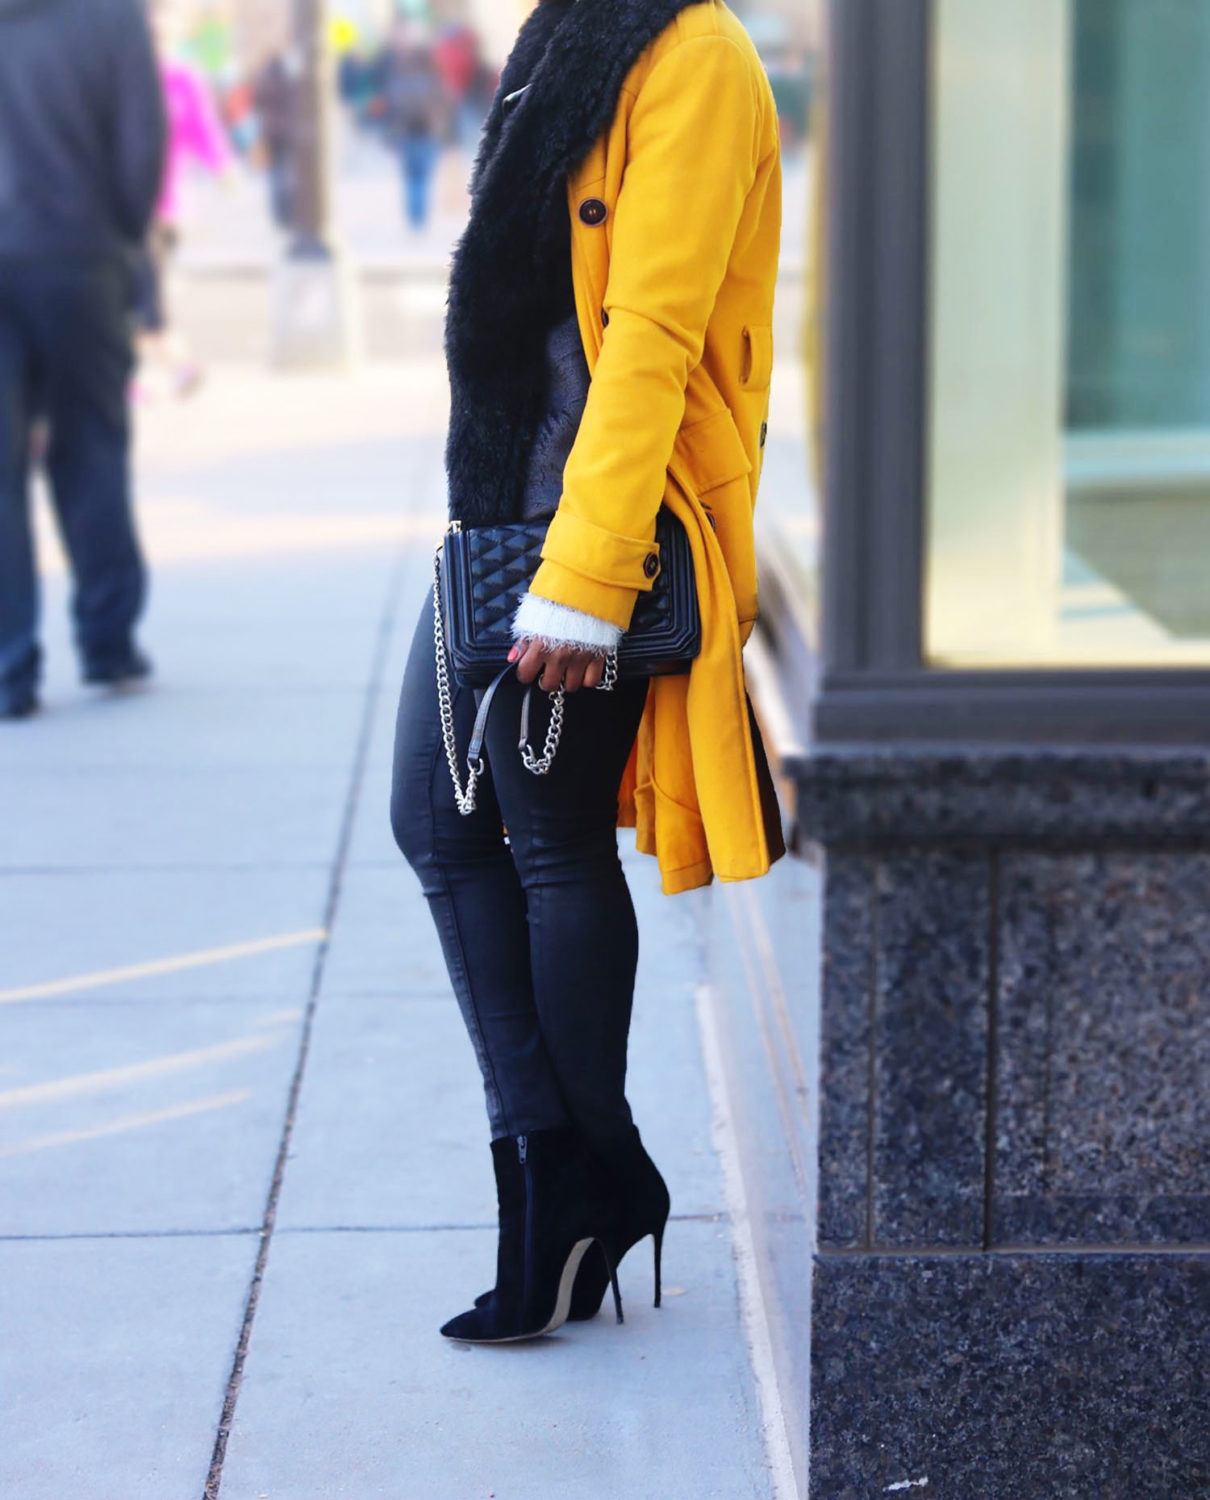 style-synopsis-vibrant-coat-street-style